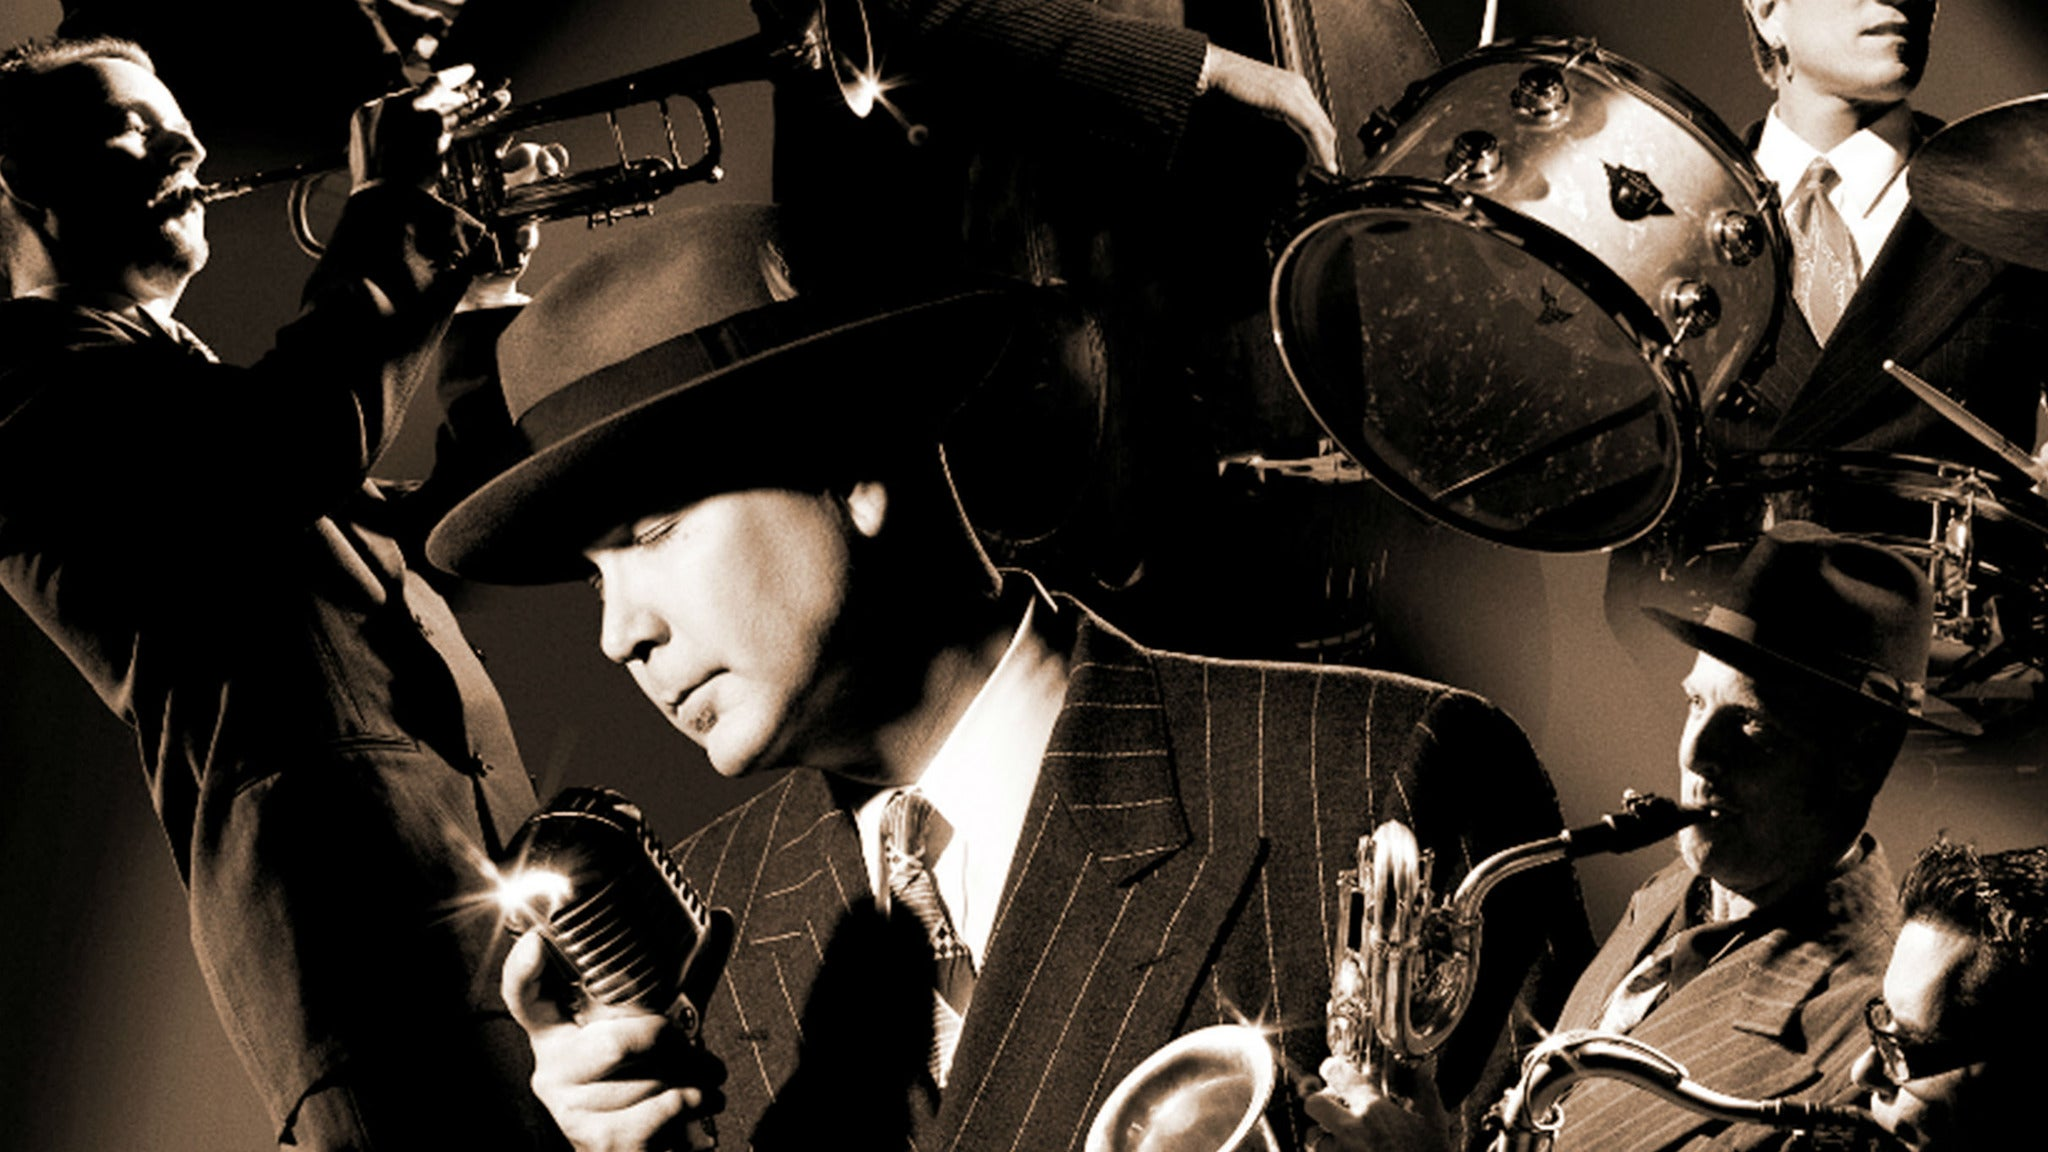 Big Bad Voodoo Daddy at The Lyric Theatre